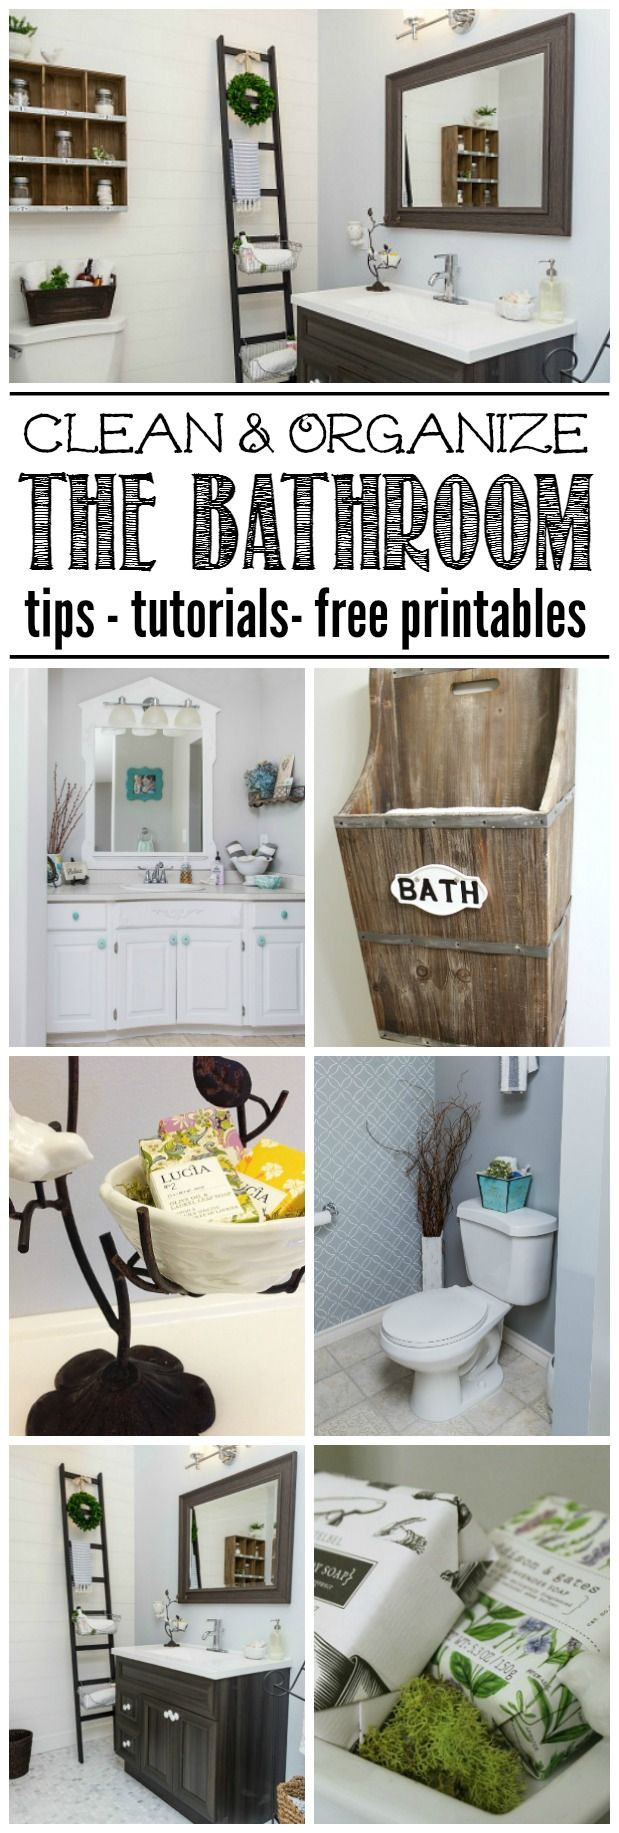 Bathroom Cleaning and Organization Ideas | Pinterest | Household ...